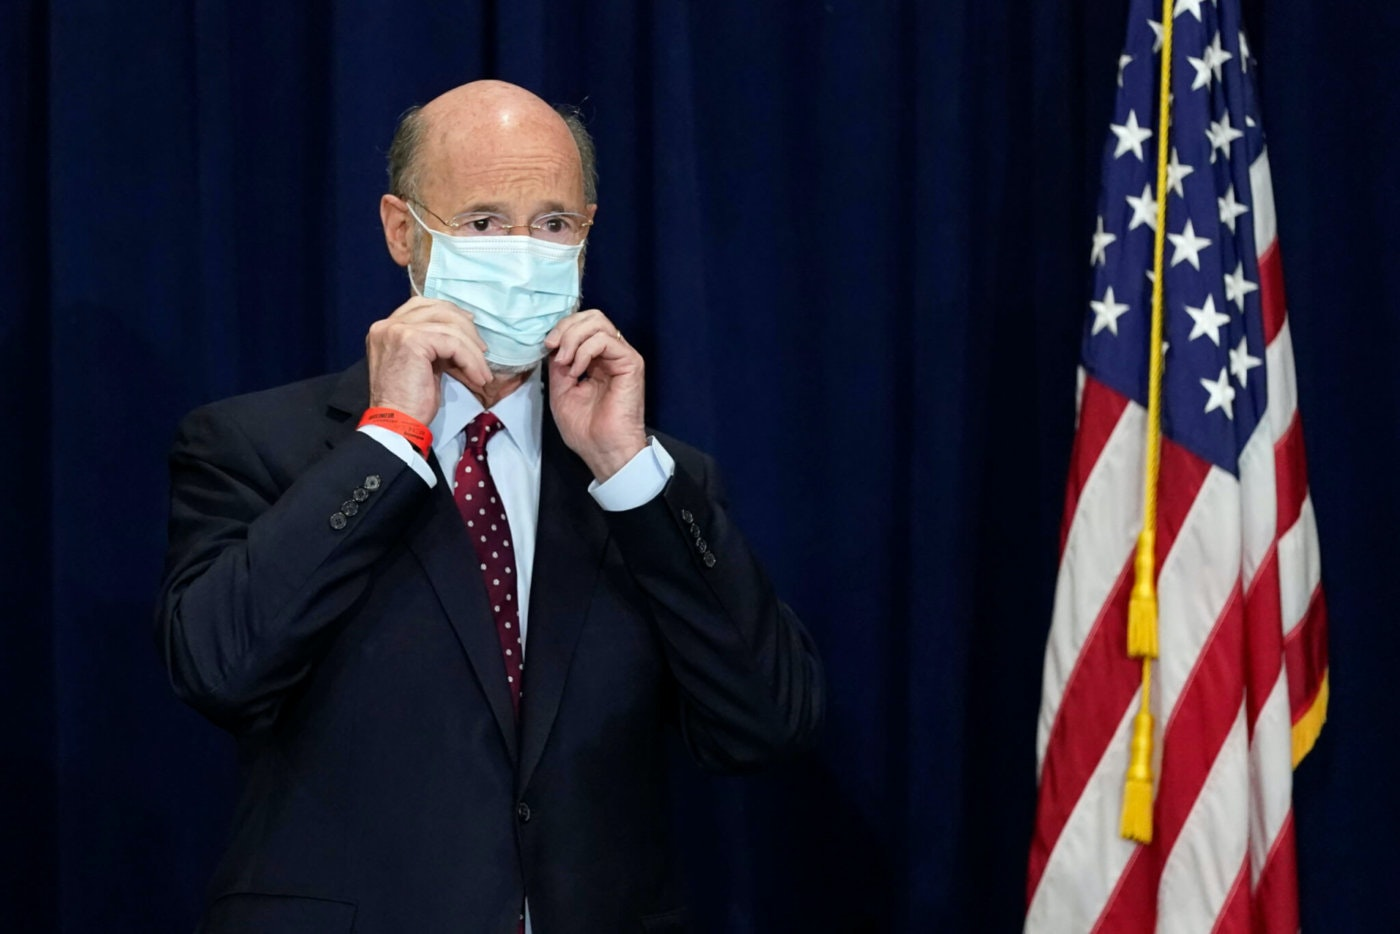 Pennsylvania Gov. Tom Wolf adjusts his face mask to protect against COVID-19 during a news conference in Harrisburg in November 2020. (AP File Photo/Julio Cortez)